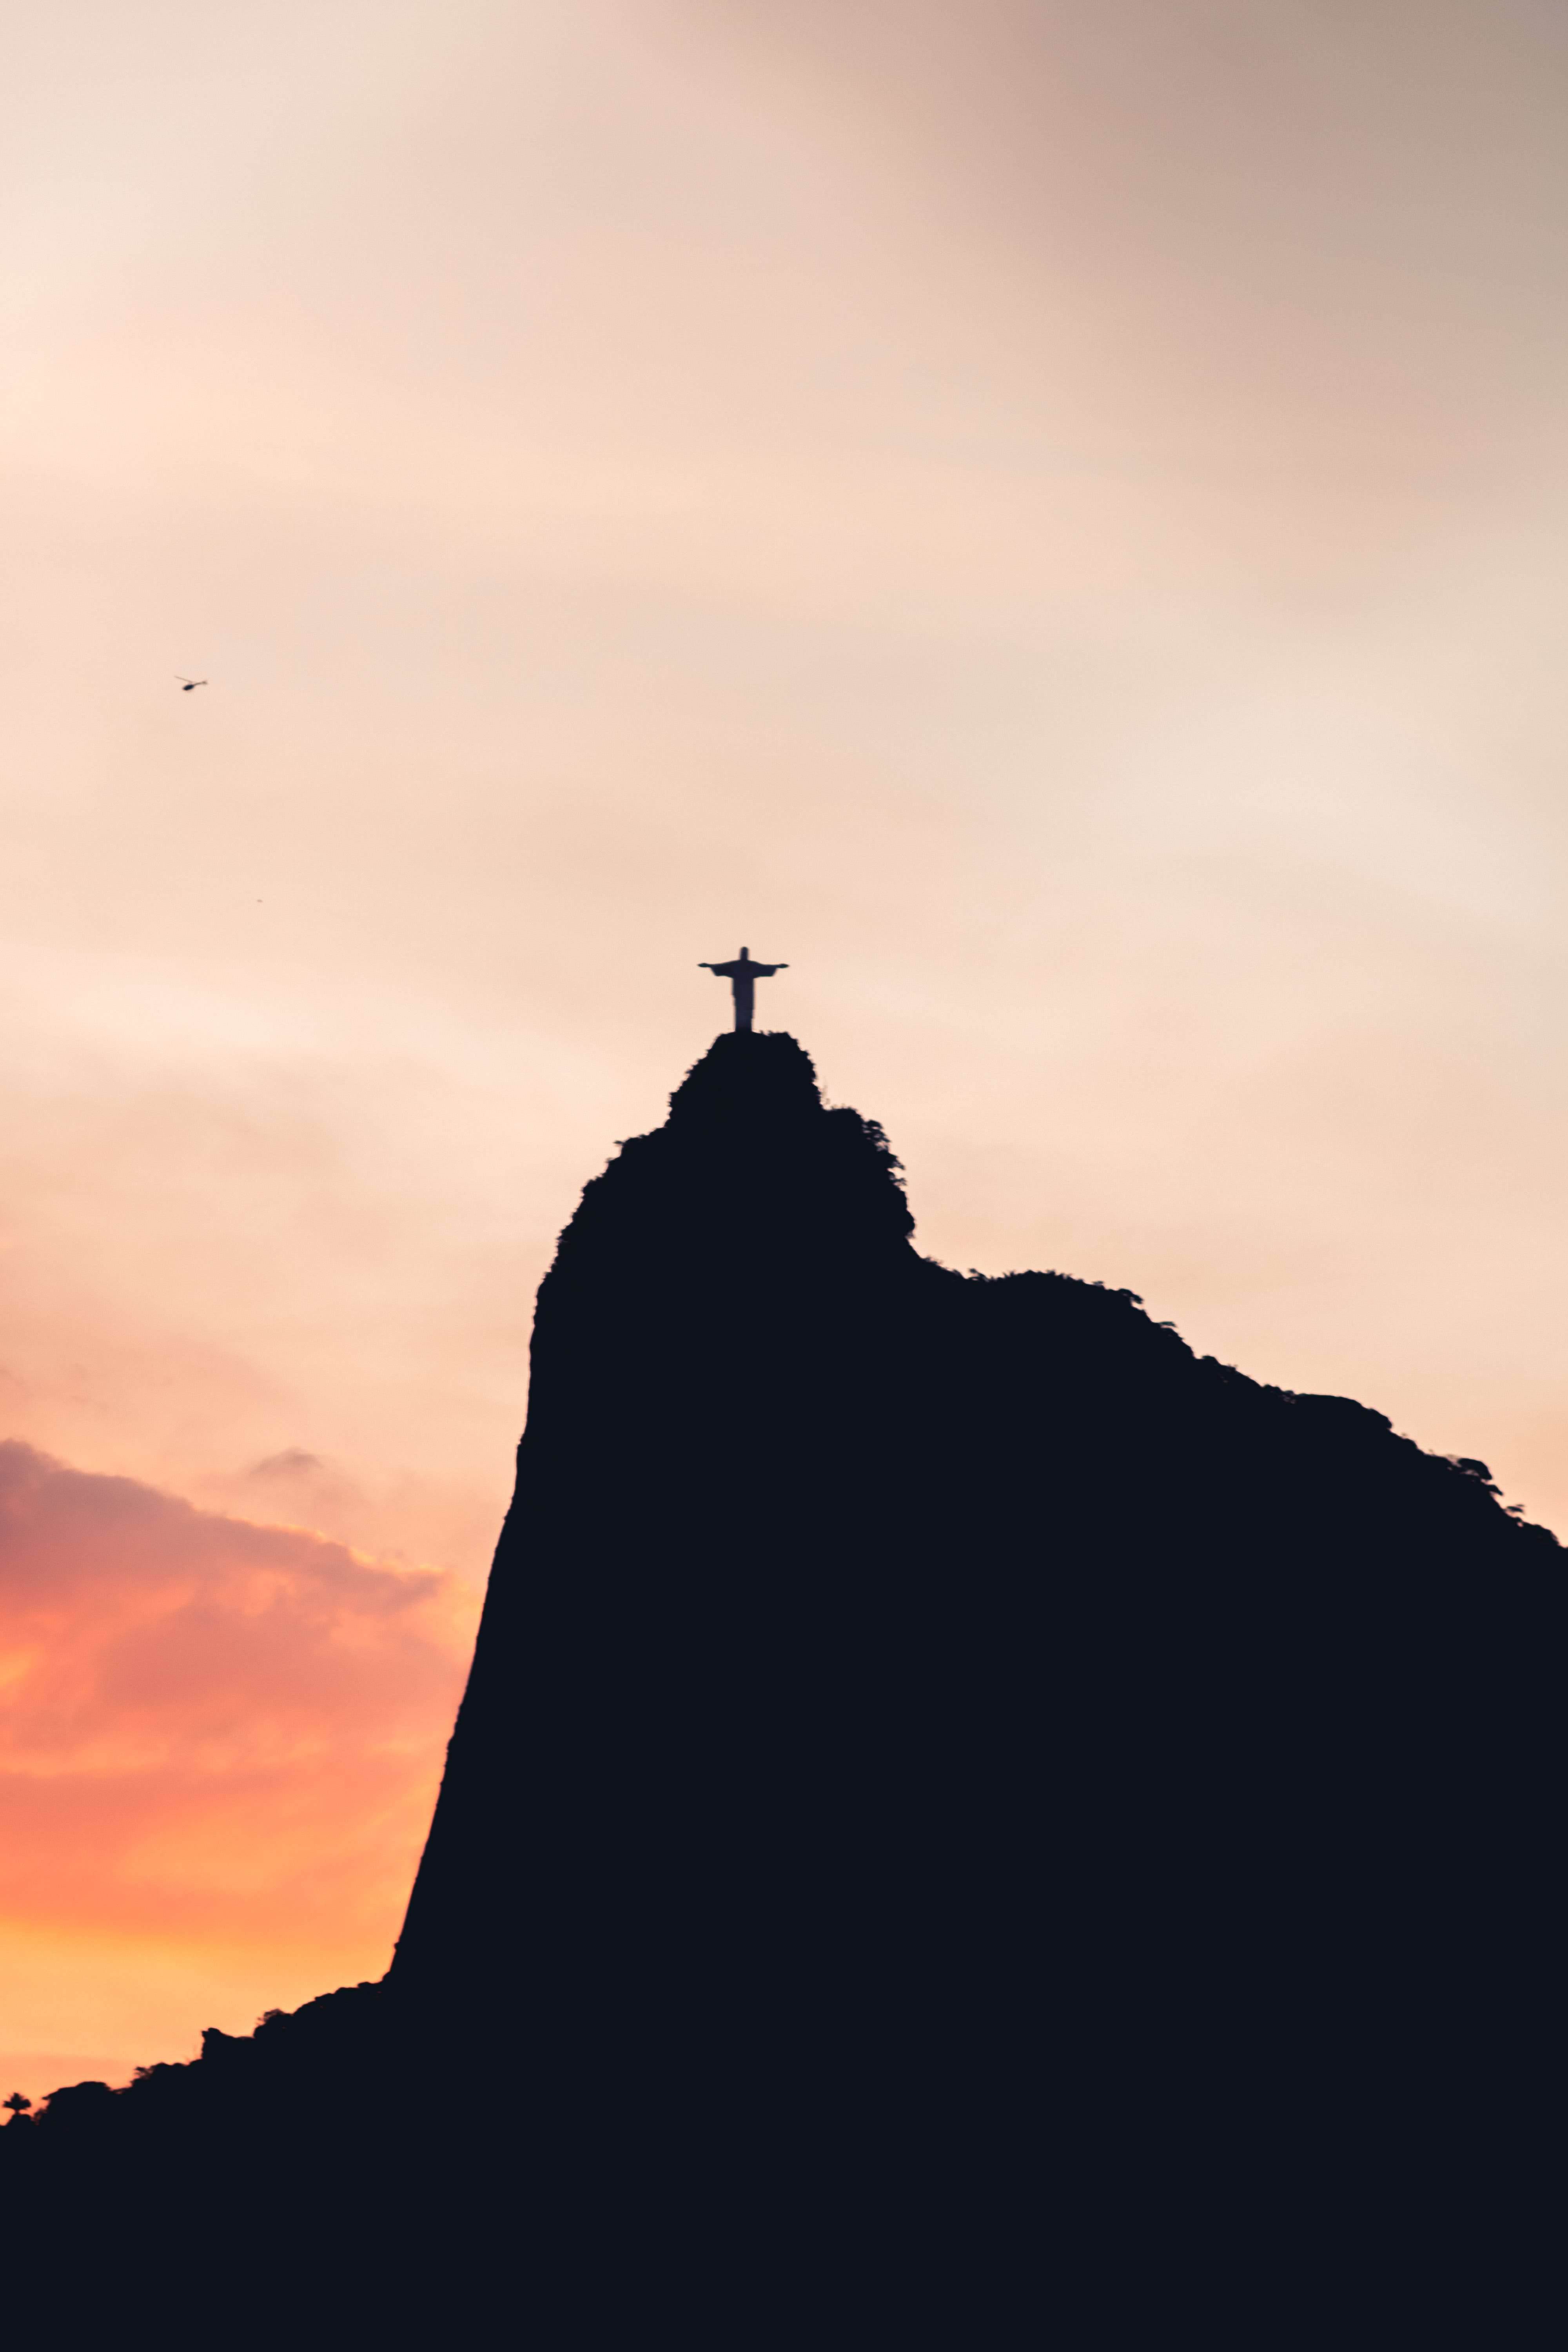 Black And White Silhouette Of Christ The Redeemer Free Stock Photo